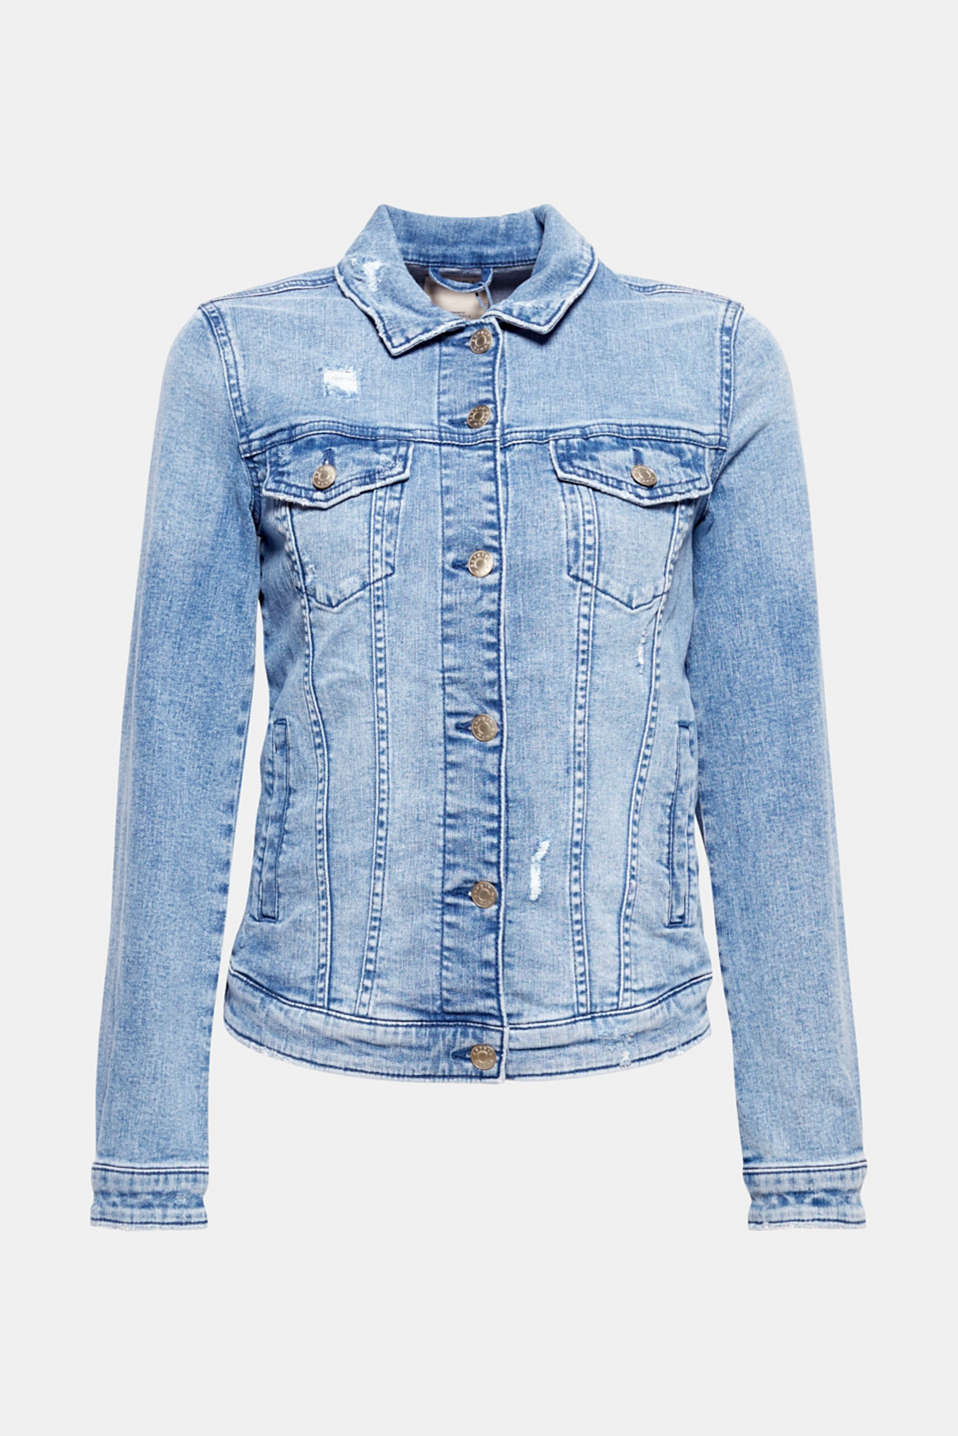 This femininely fitted denim jacket in robust denim with stretch for comfort and vintage effects has what it takes to become a favourite piece!